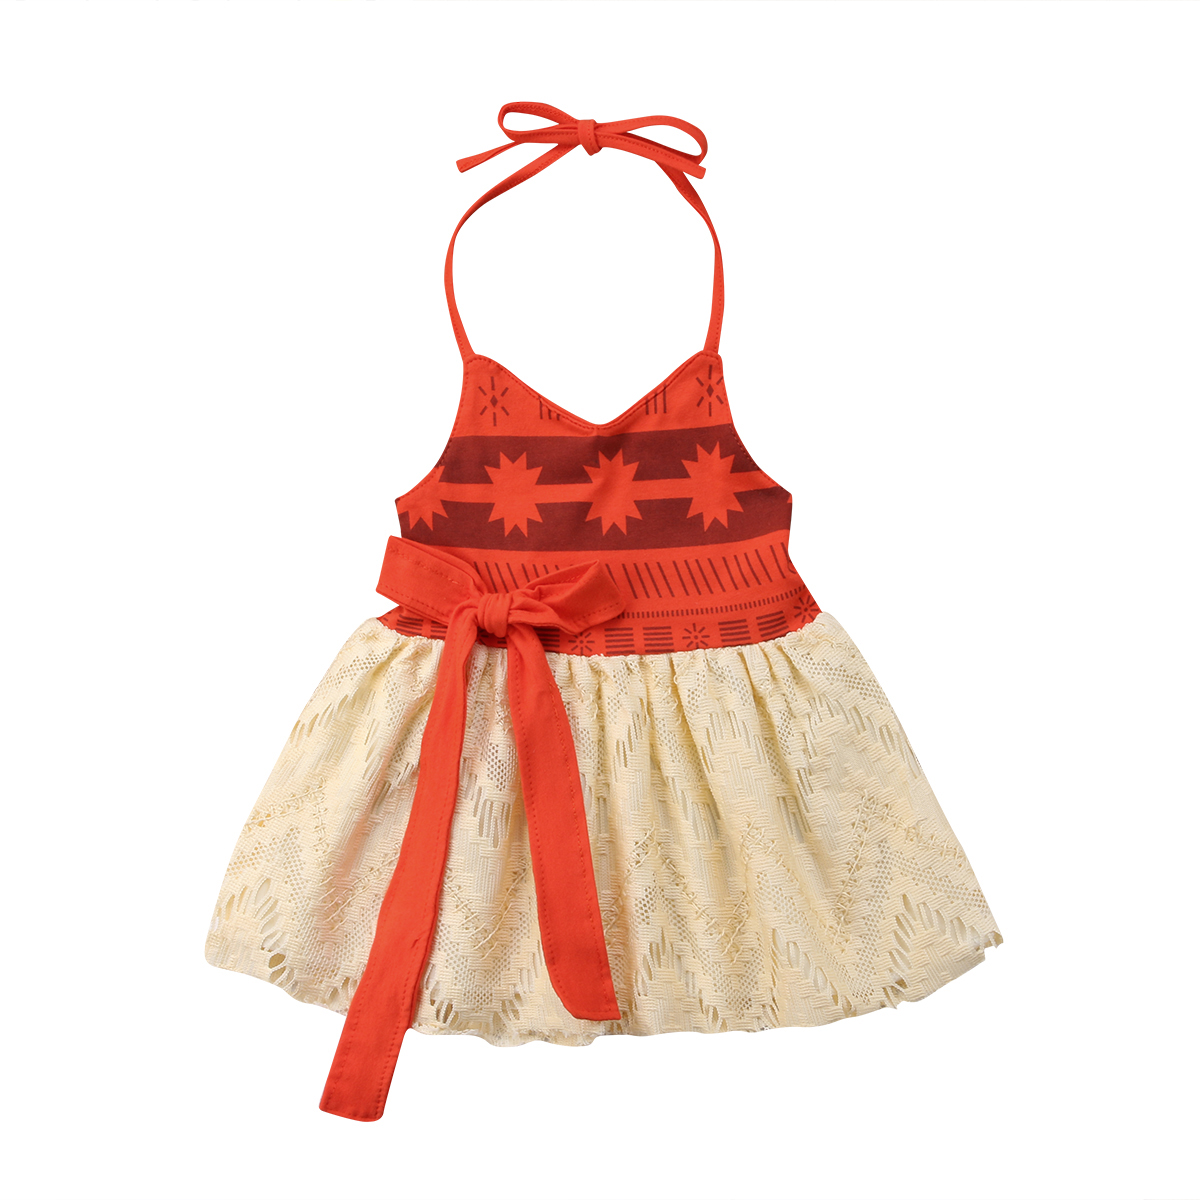 Princess Newborn Toddler Kids Baby Girl Moana Dress Summer Sleeveless Backless Strap Tutu Bow Beach Dress Sundress Baby Clothing summer baby girl s dress cloth cherry blossom korean version sleeveless vest dress princess bow tie vestido